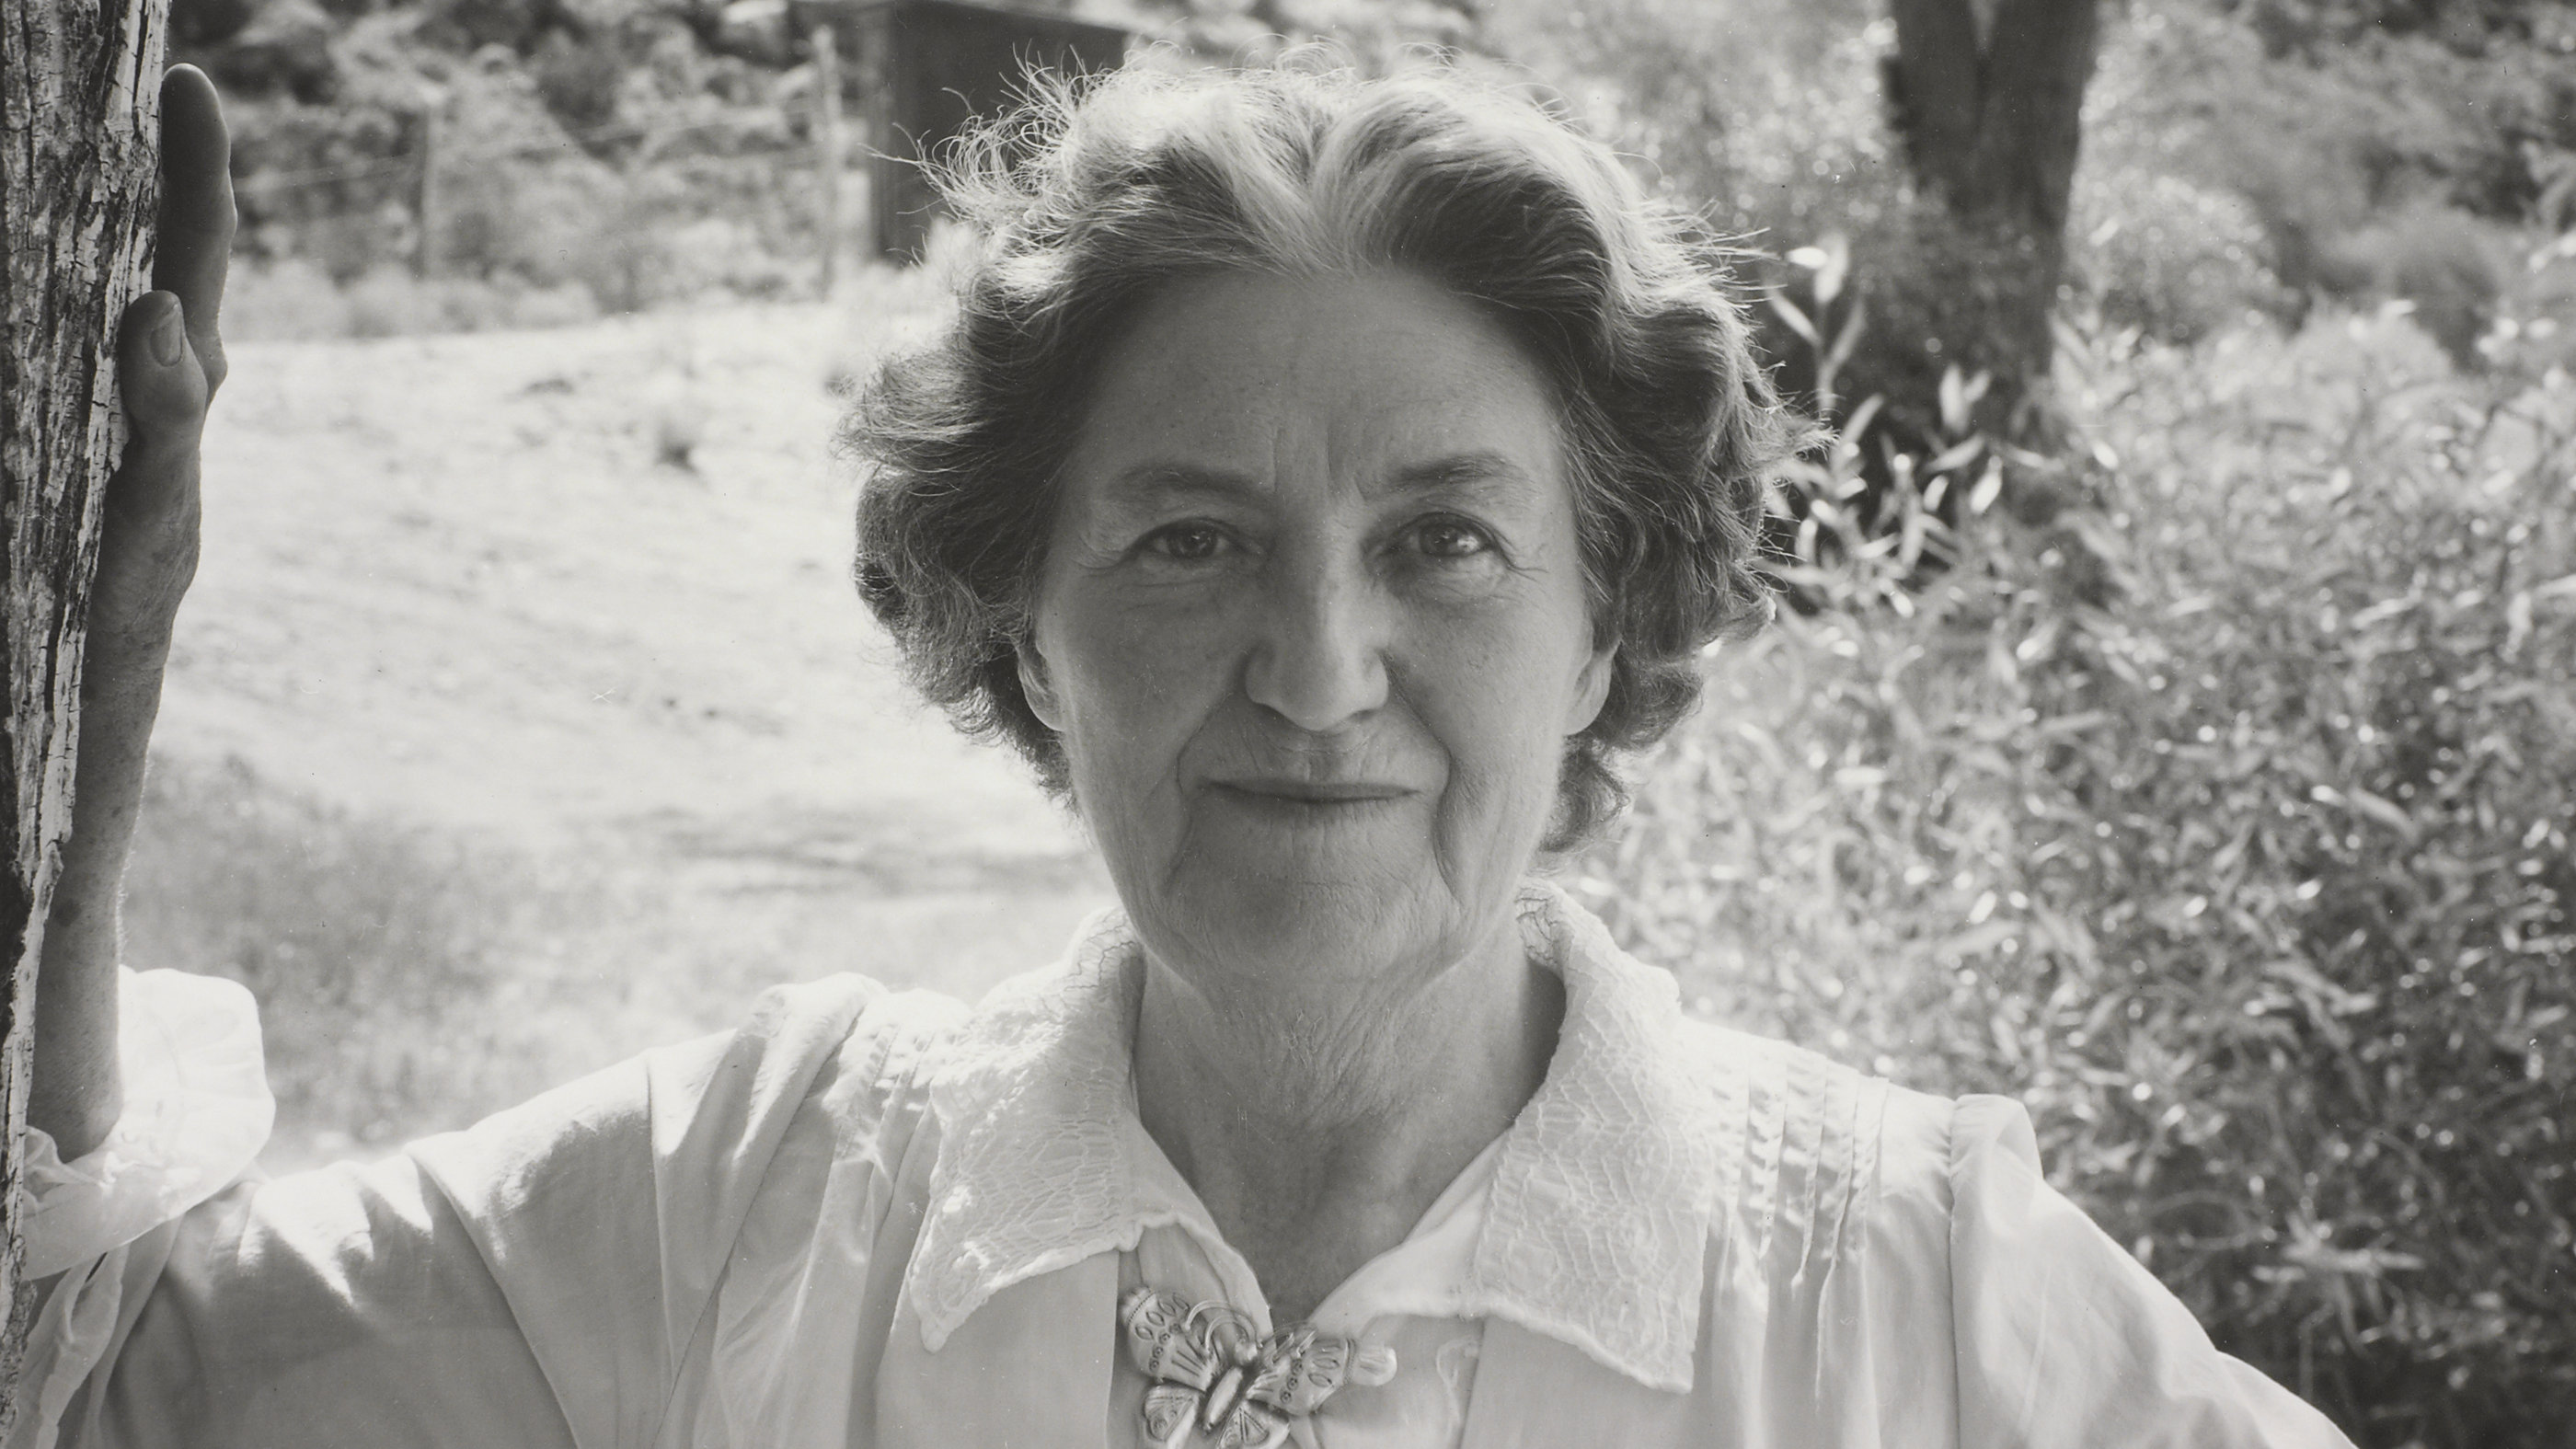 Mabel Dodge Luhan, shown here in a 1947 photograph by Laura Gilpin from the collection of the Amon Carter Museum of American Art, was instrumental in fostering the influential artist colony of Taos, New Mexico.